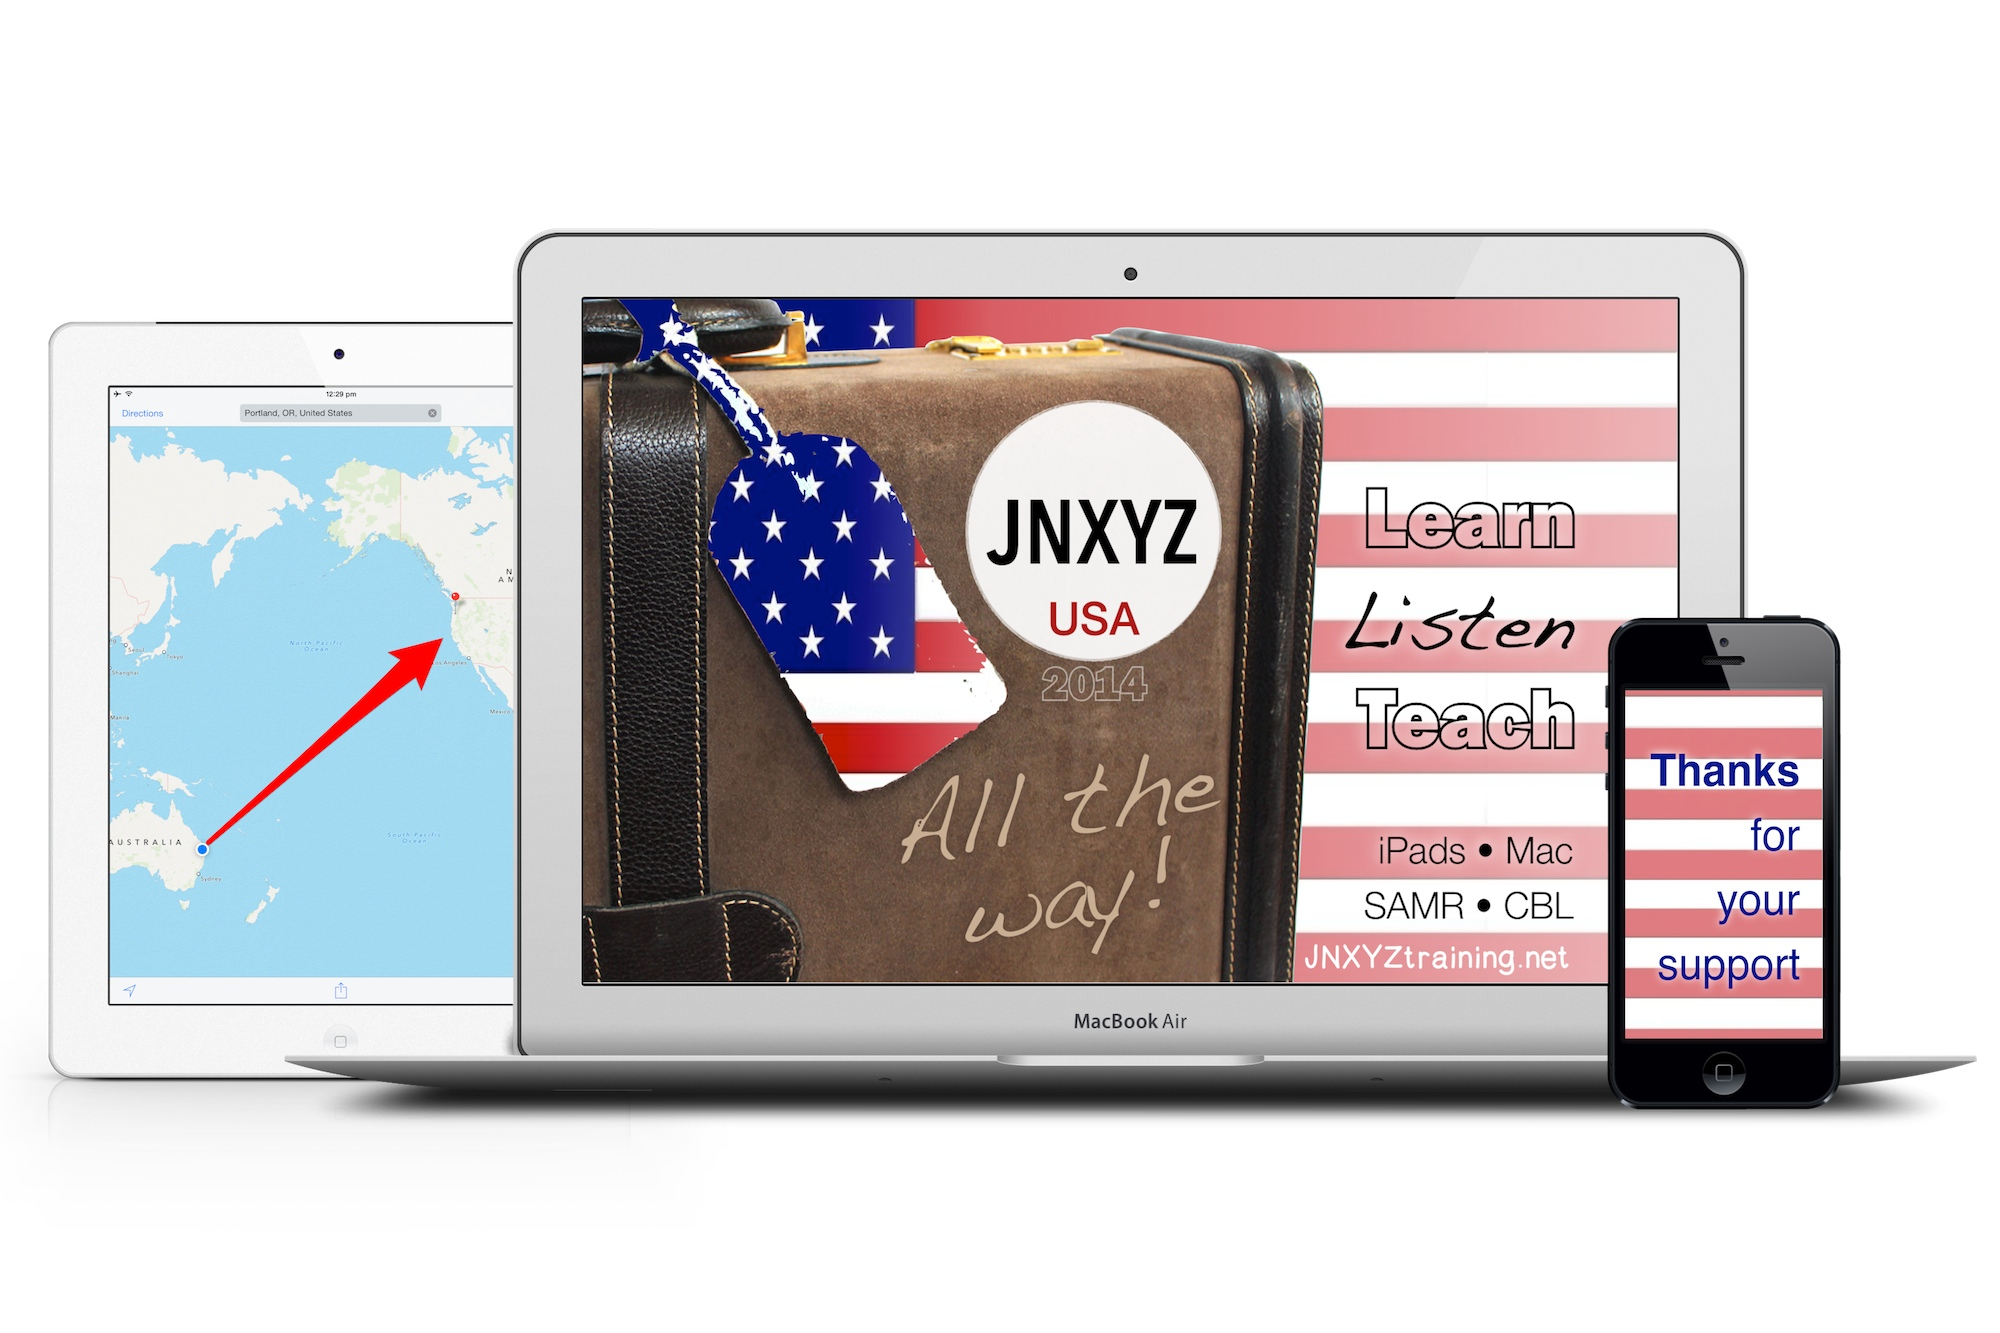 Listen, Learn, Teach: Get perks for you, & help JNXYZ go all the way to the USA!